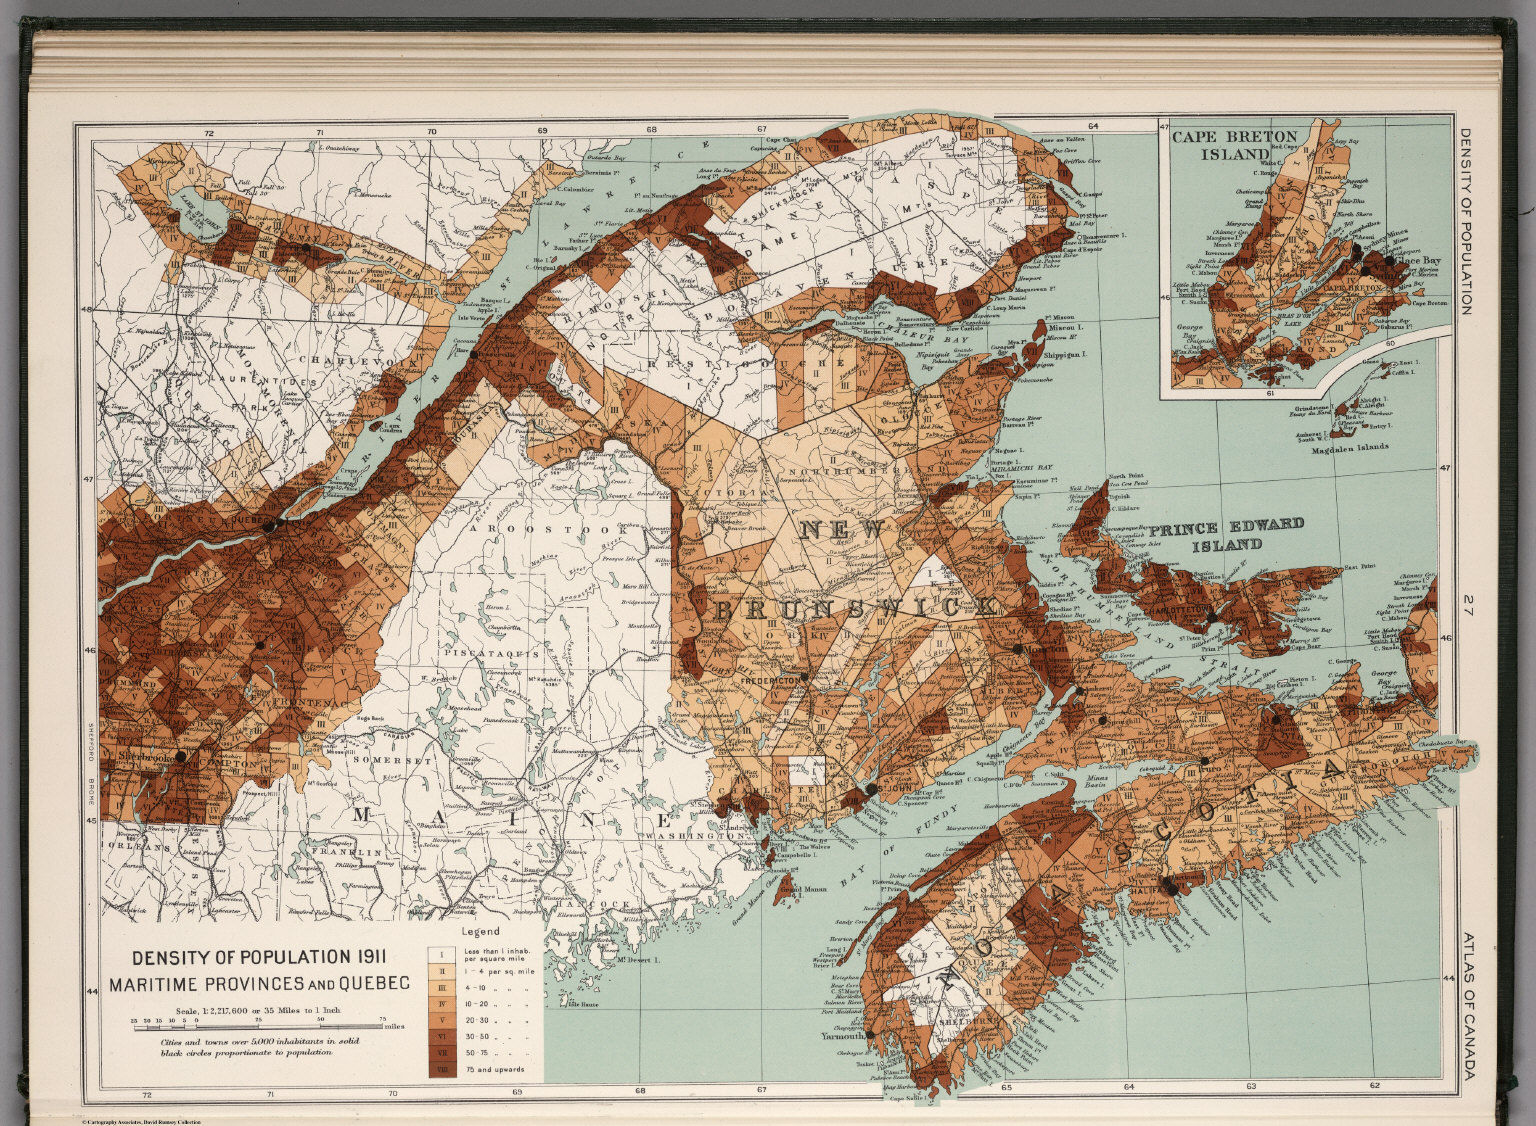 Quebec Population Density Density of Population 1911